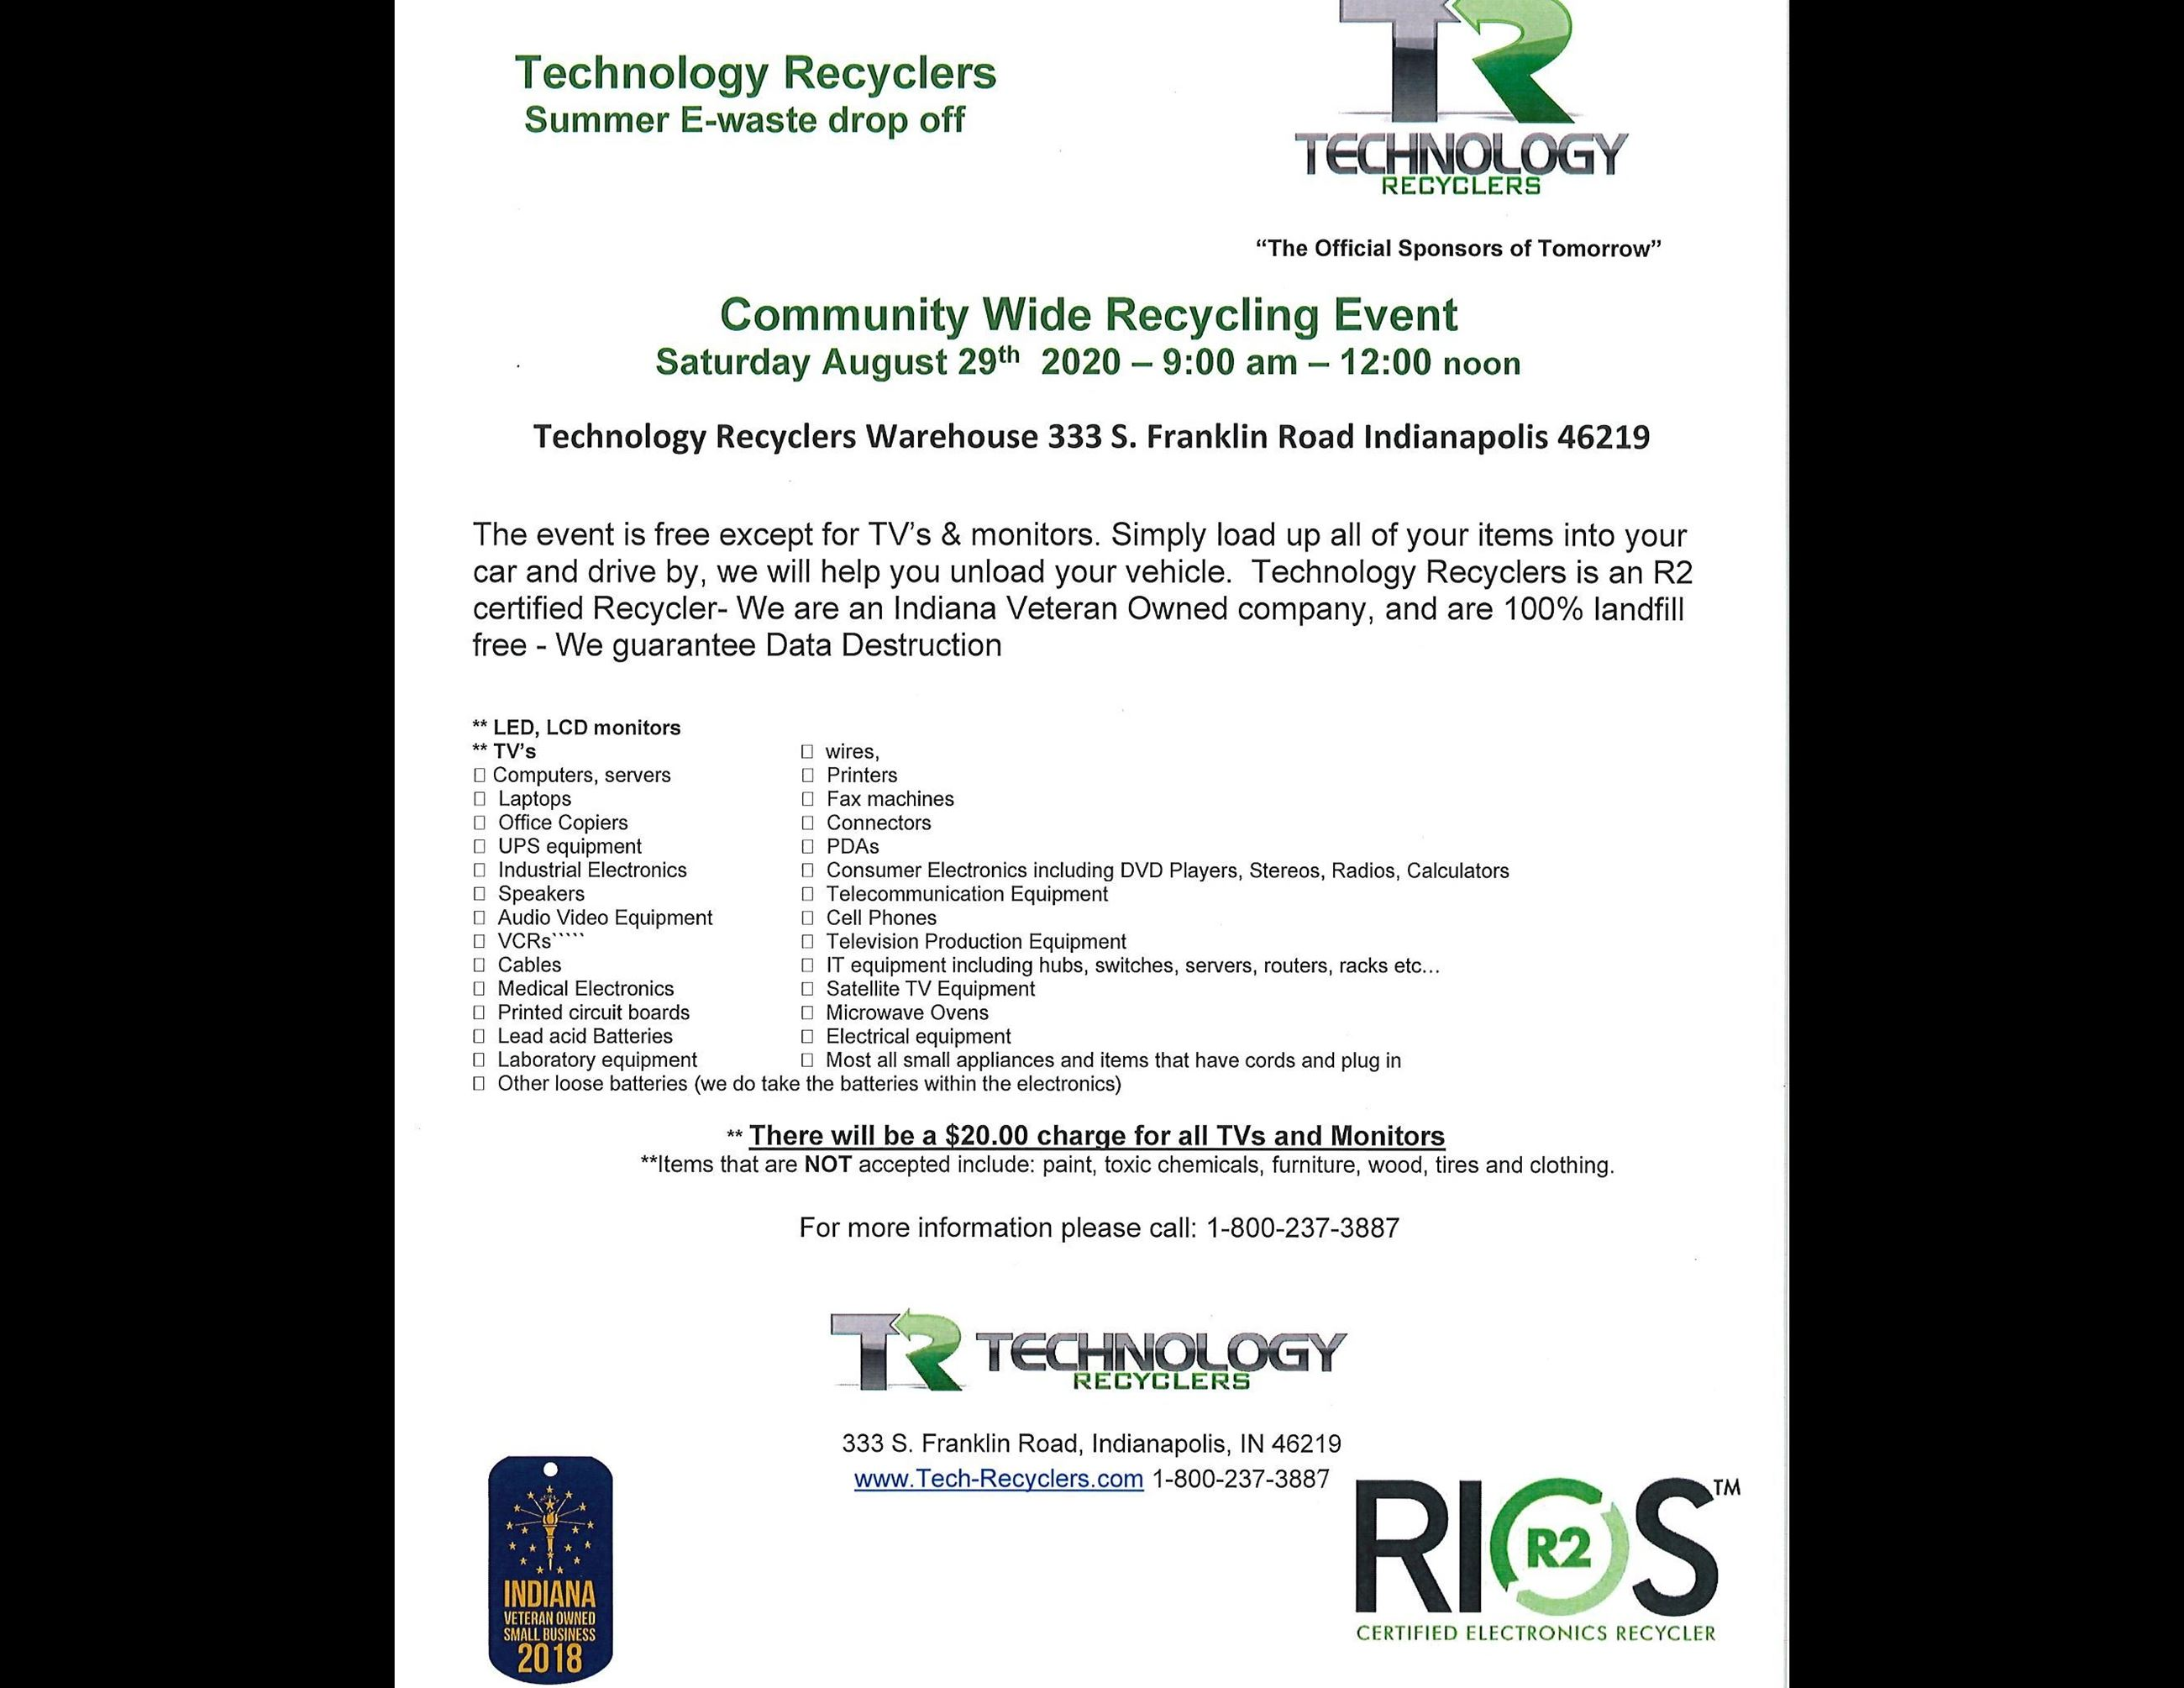 Technology Recyclers 2020 Summer Events. Community Wide Recycling Event Saturday August 29th 2020